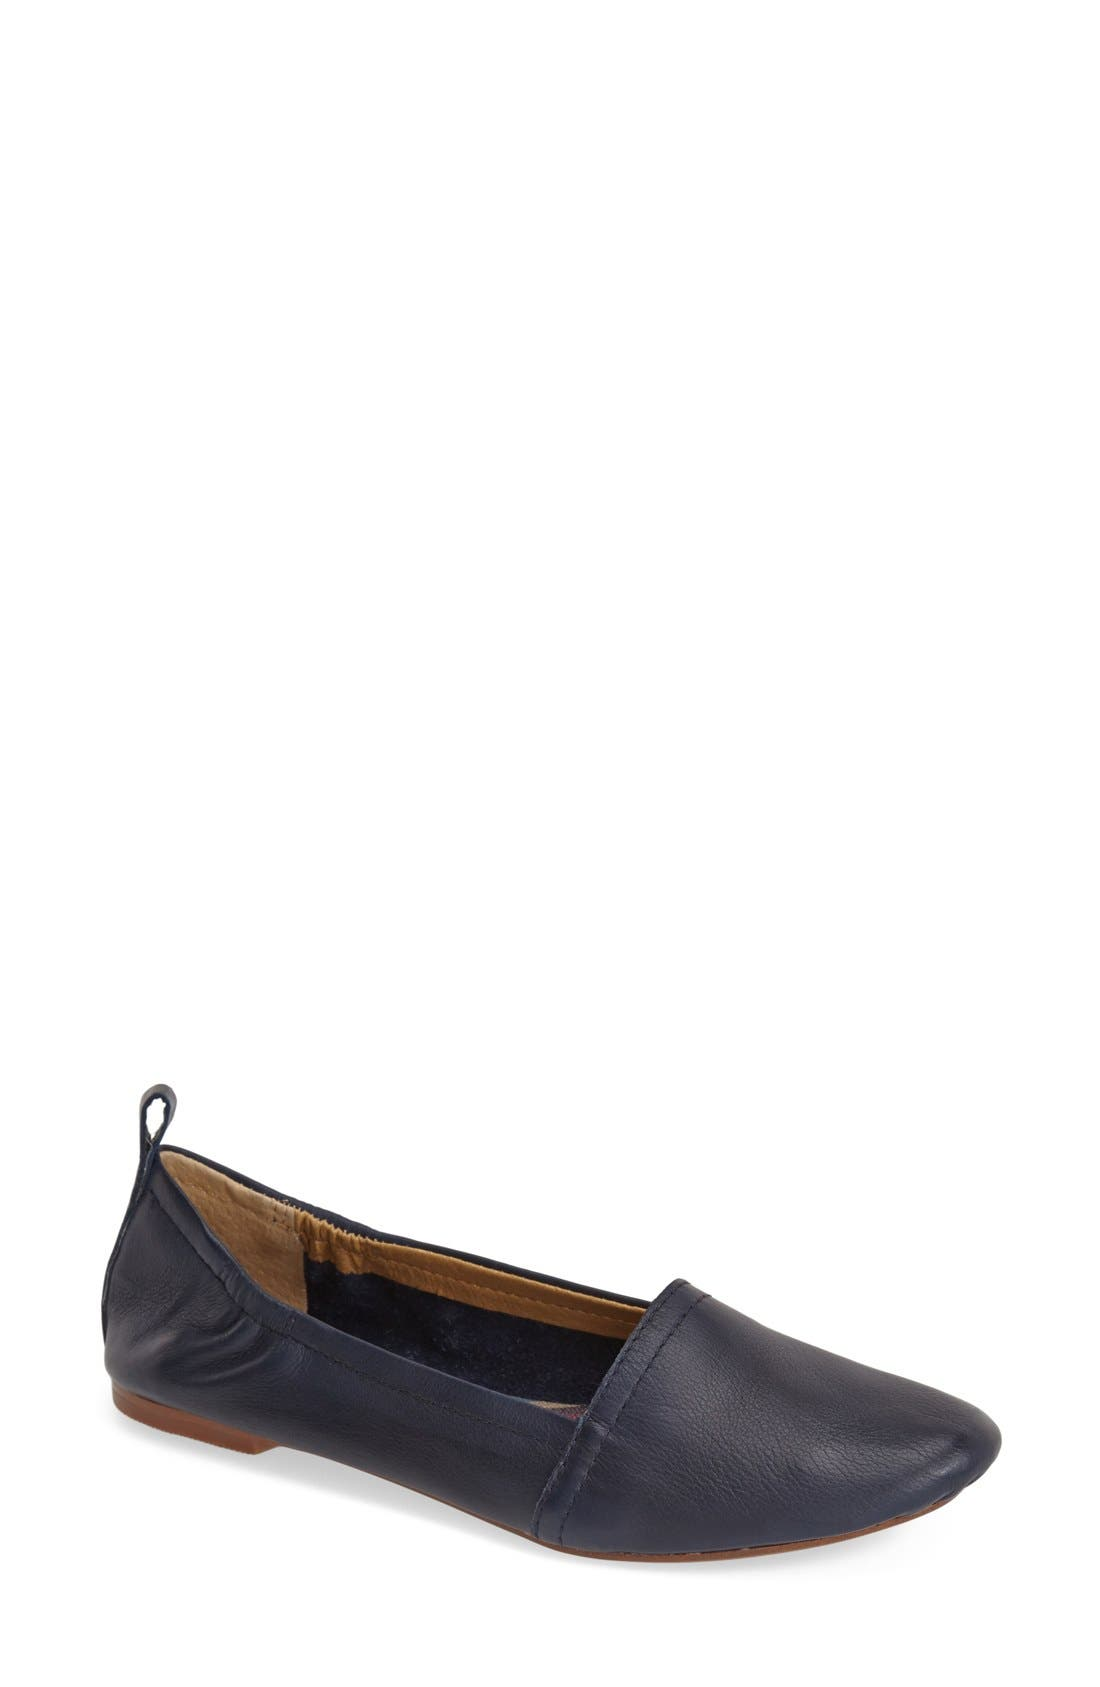 'Bettie' Leather Flat,                             Main thumbnail 7, color,